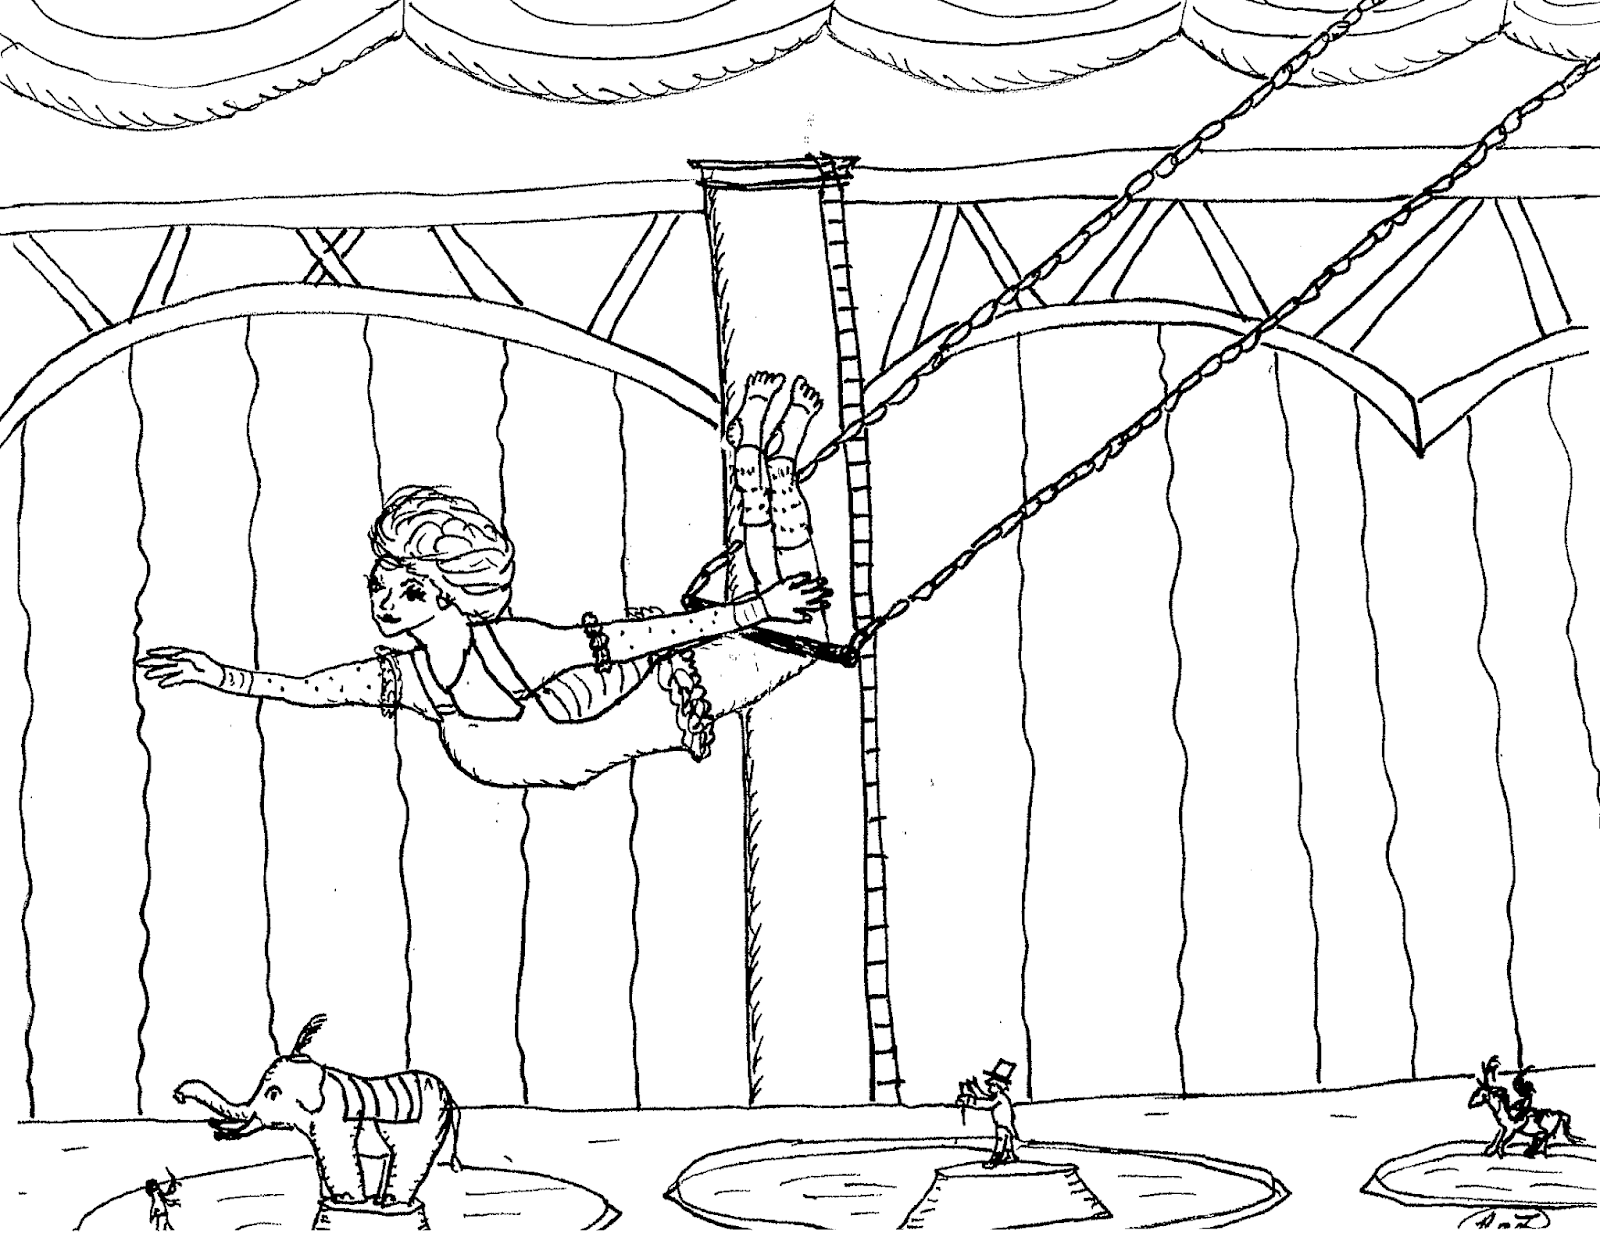 Robin's Great Coloring Pages: The Greatest Showman circus ...